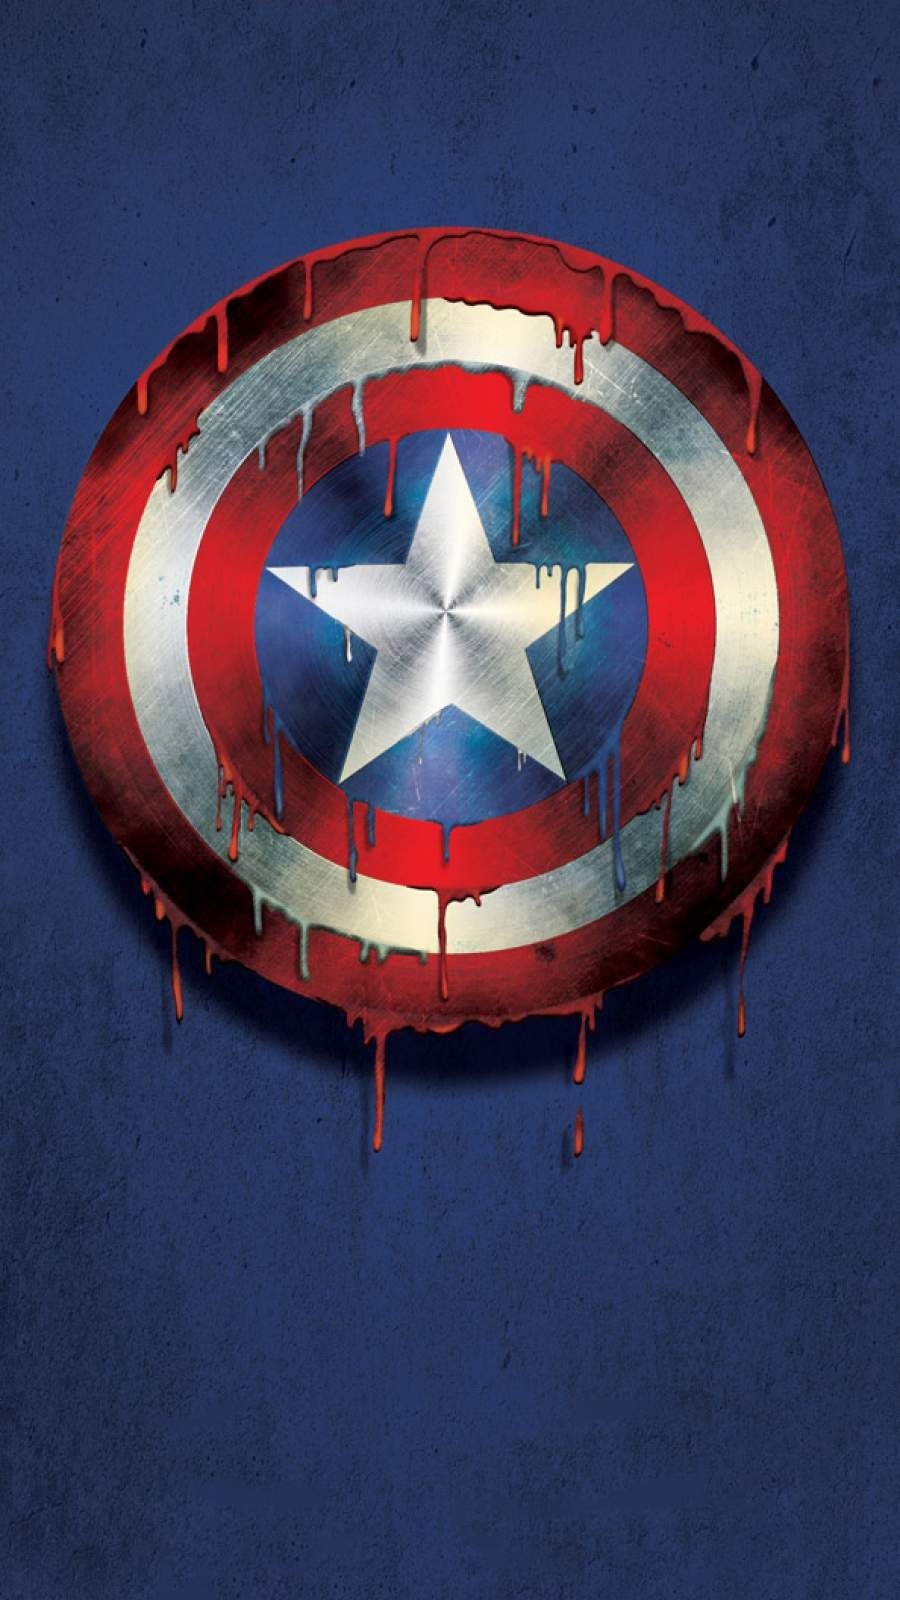 Captain America Shield Melting Iphone Wallpaper Captain America Shield Marvel Iphone Wallpaper Captain America